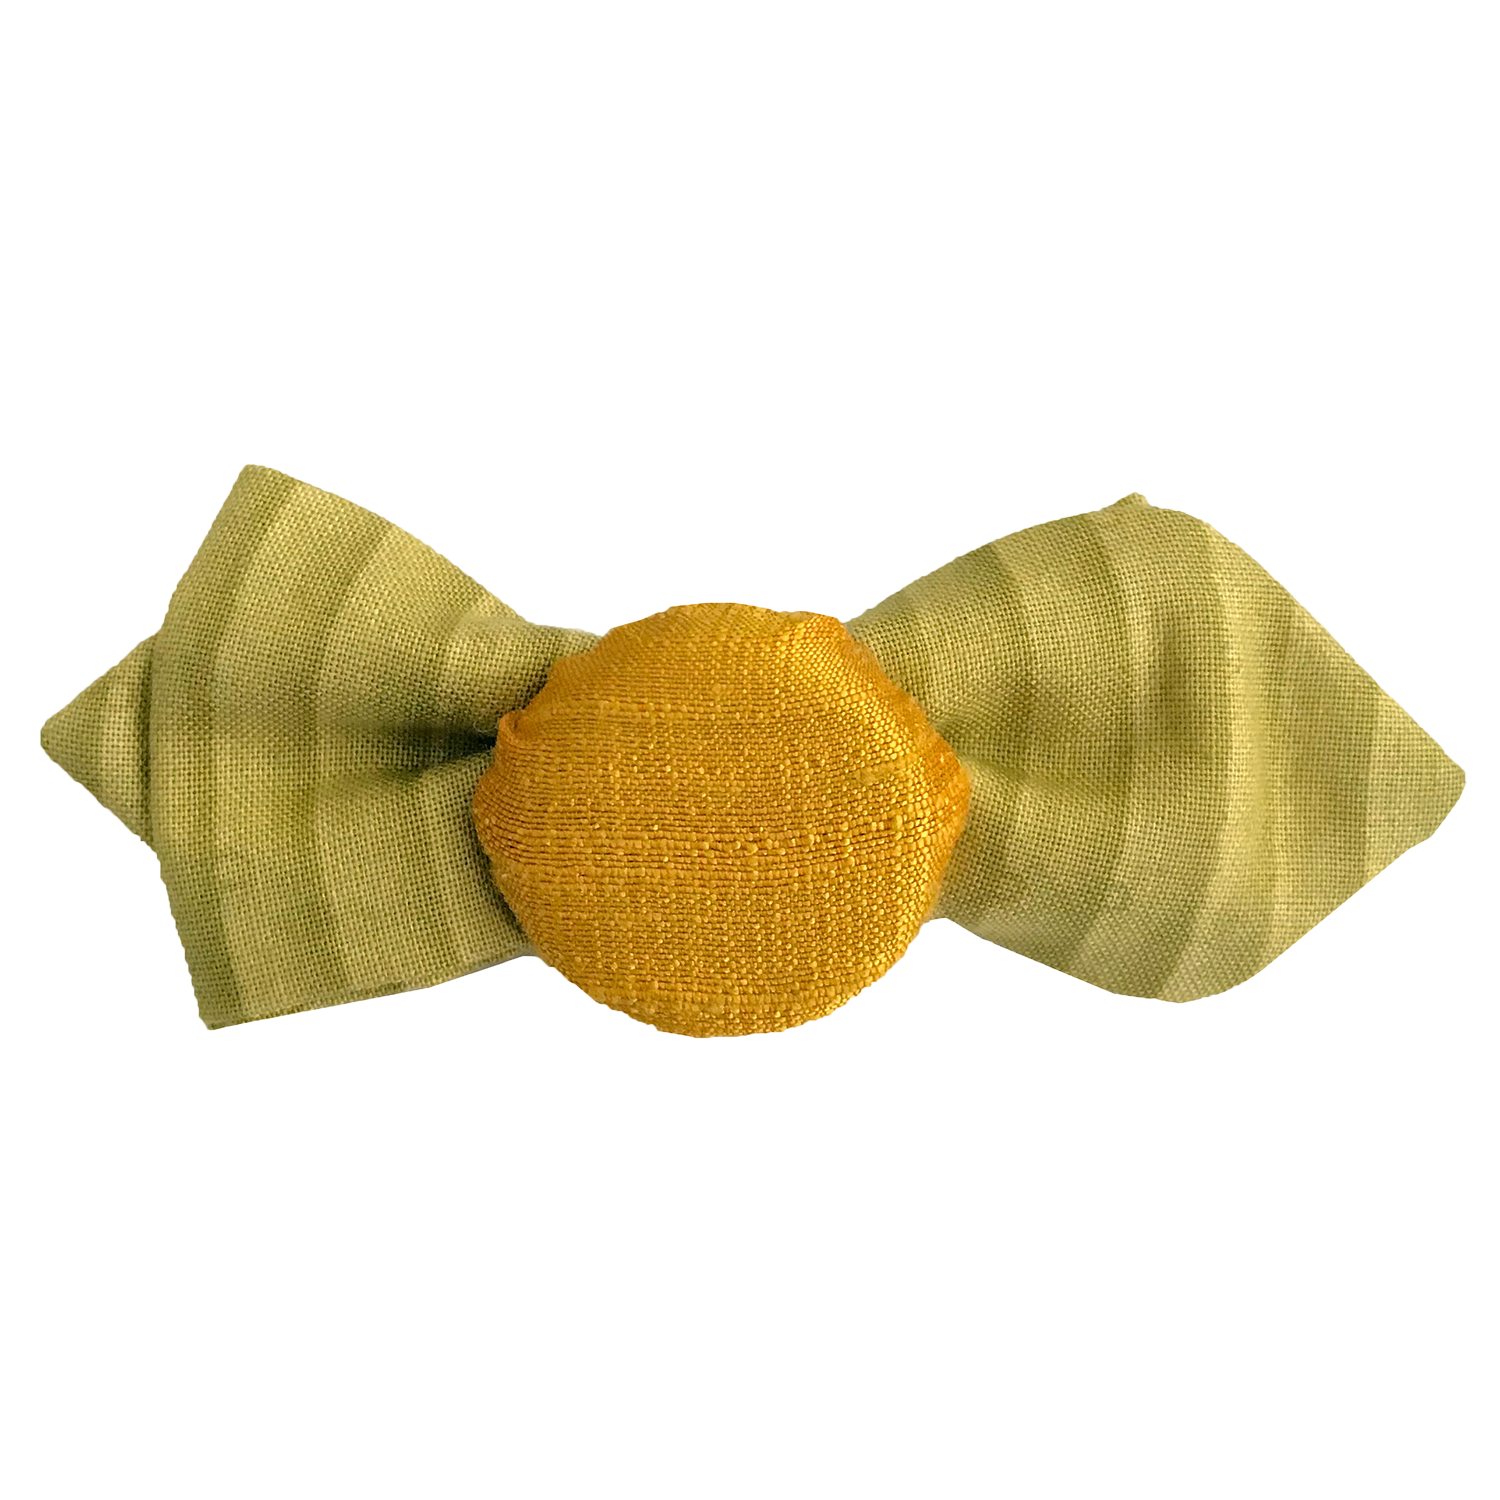 Hair pin in the shape of a mini lime green bow tie with yellow fabric covered bottle cap